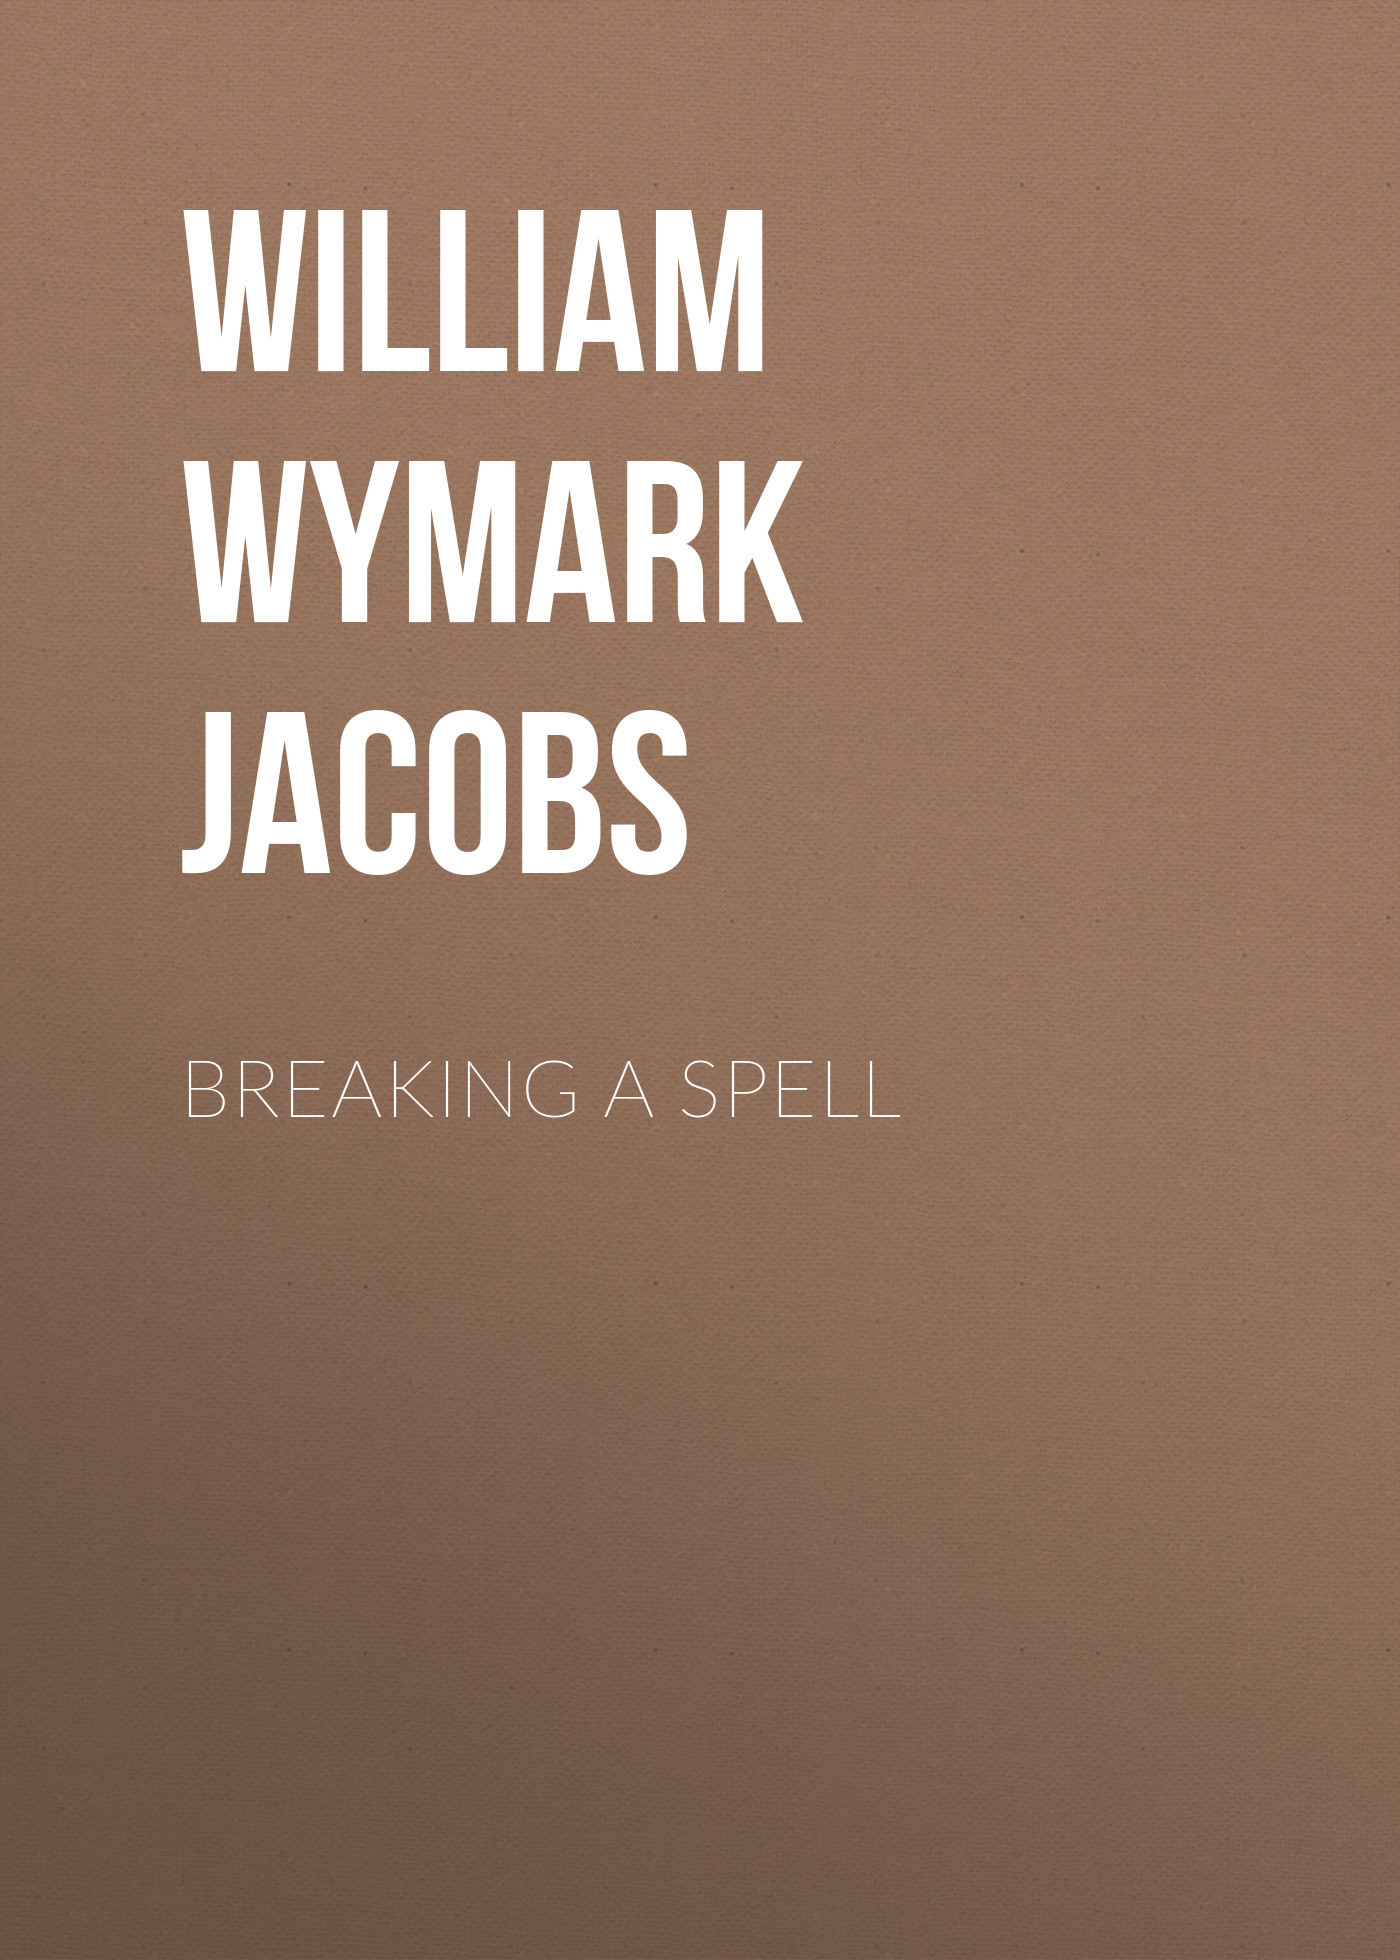 William Wymark Jacobs Breaking a Spell указатель ветра большой duckdog увб 10021 1100х400мм